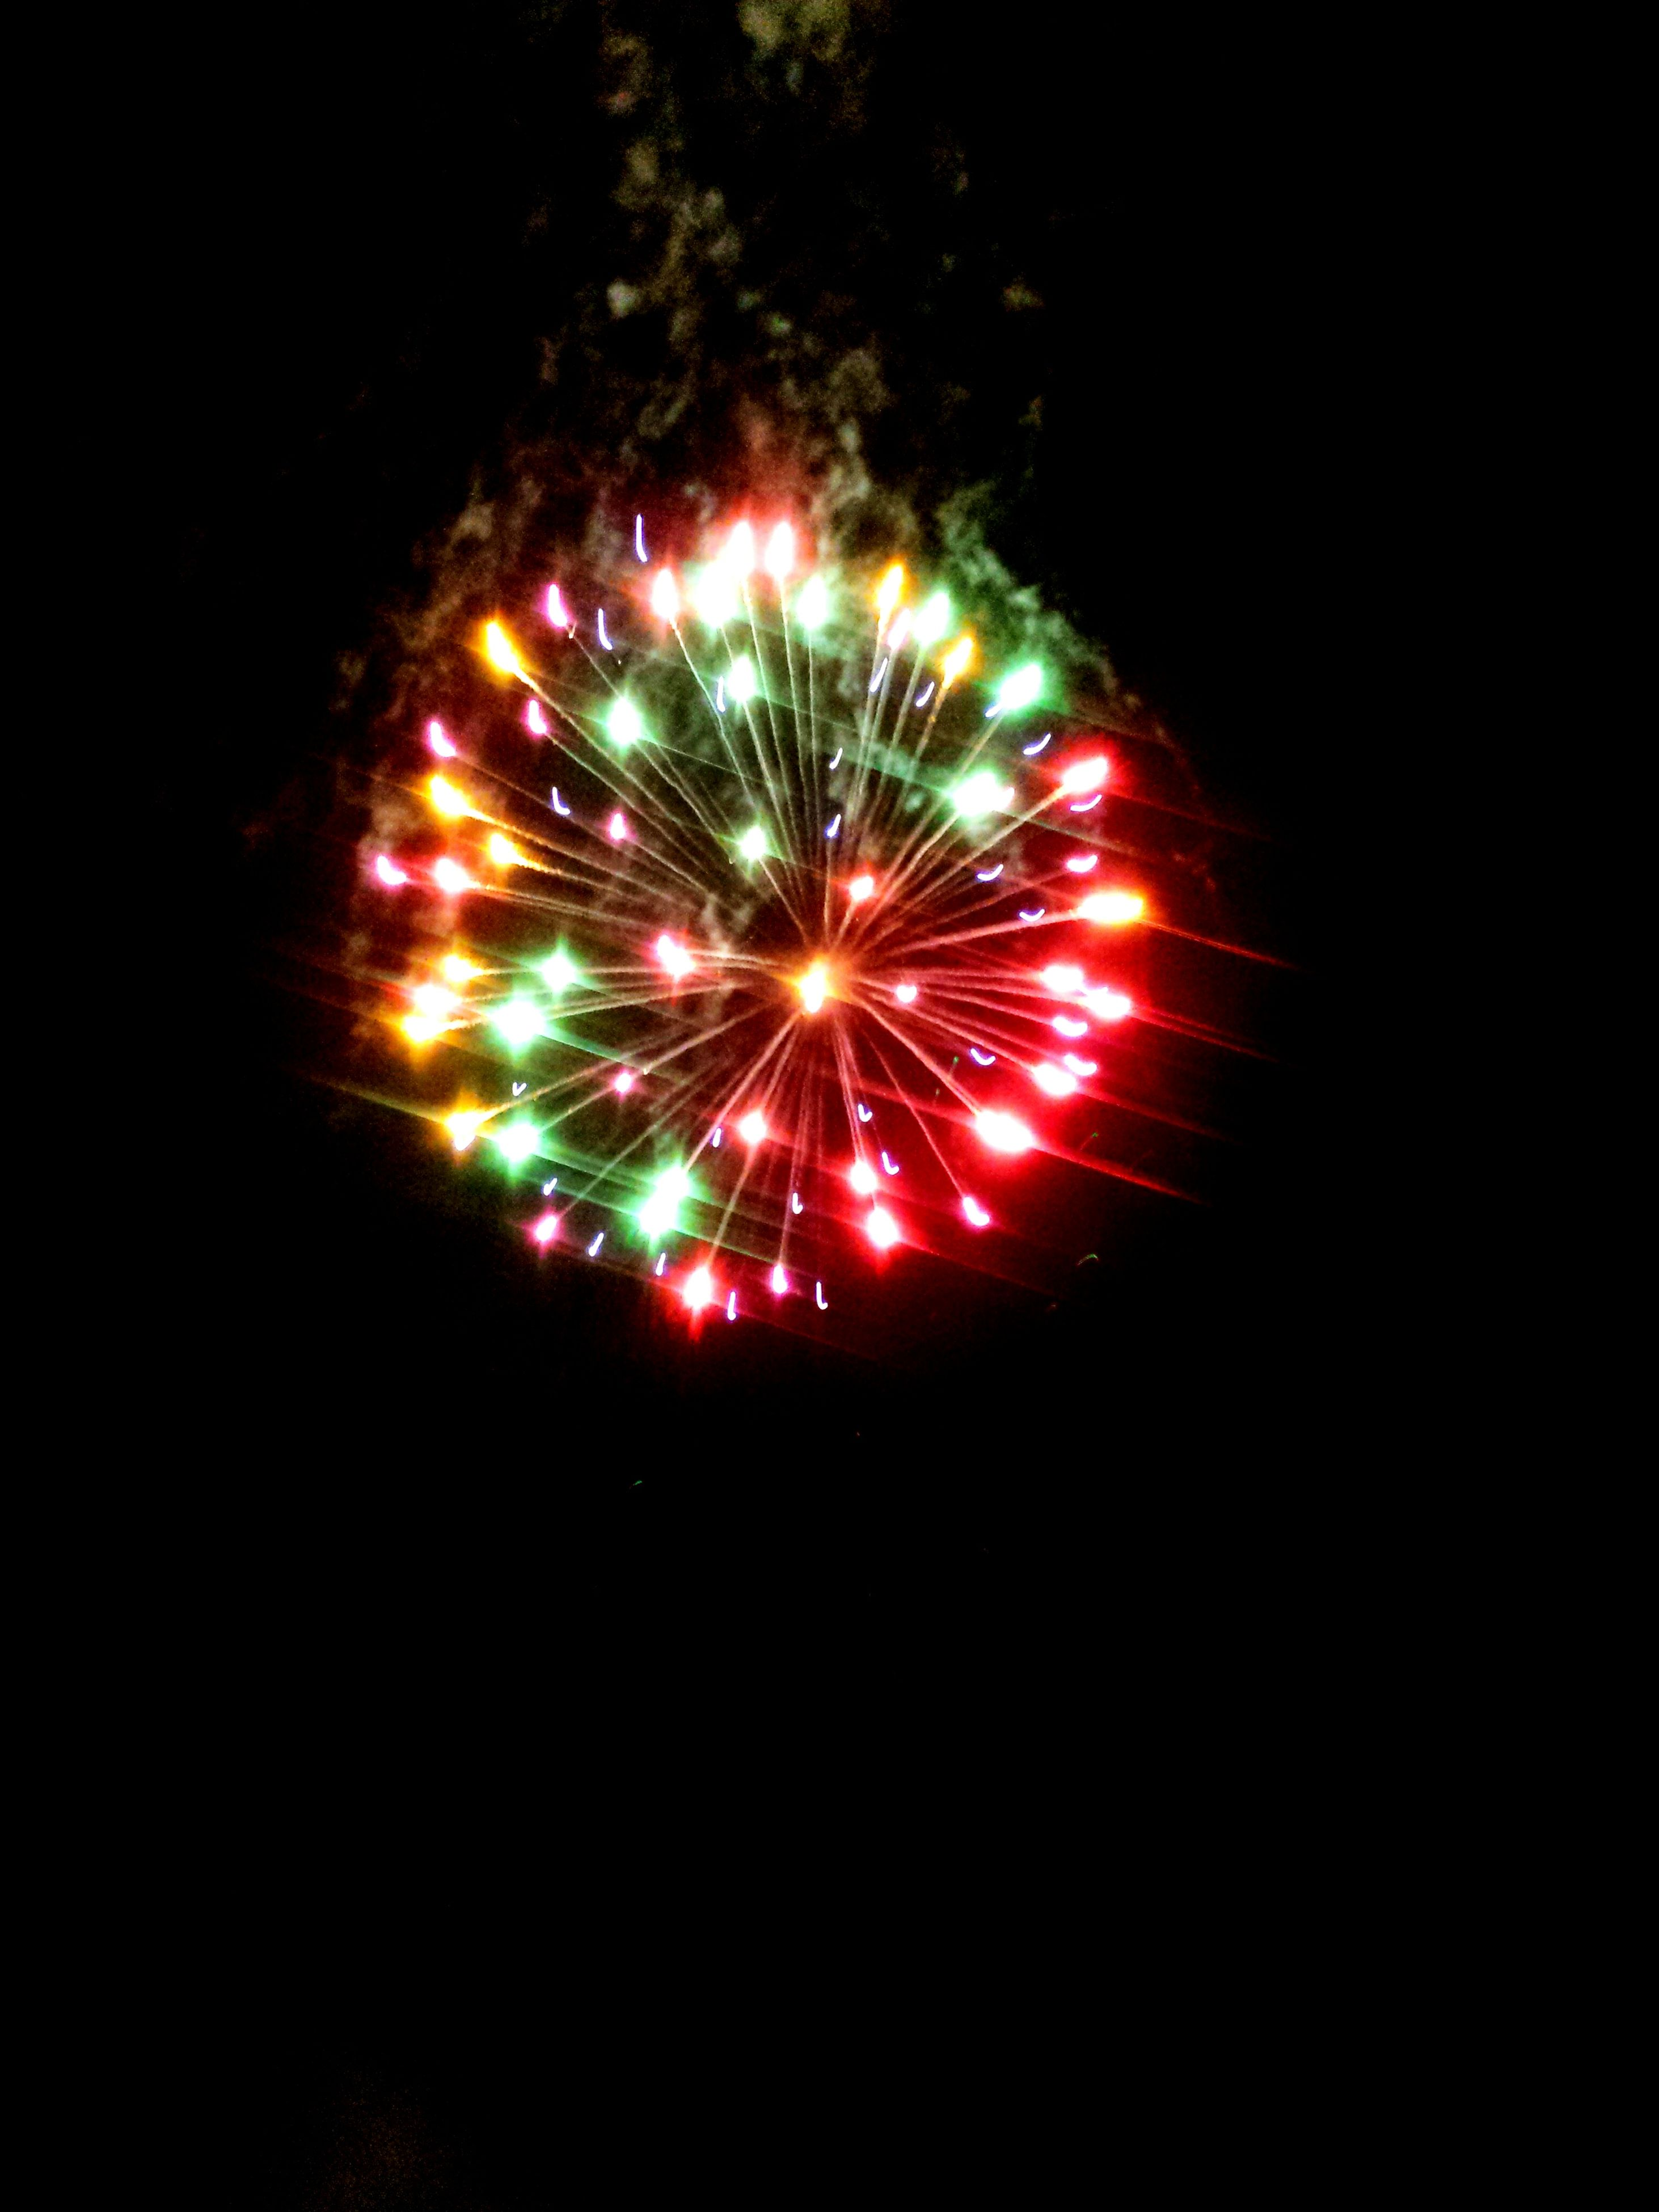 night, illuminated, celebration, firework display, glowing, exploding, long exposure, multi colored, firework - man made object, red, event, motion, arts culture and entertainment, sparks, celebration event, firework, low angle view, fire - natural phenomenon, entertainment, blurred motion